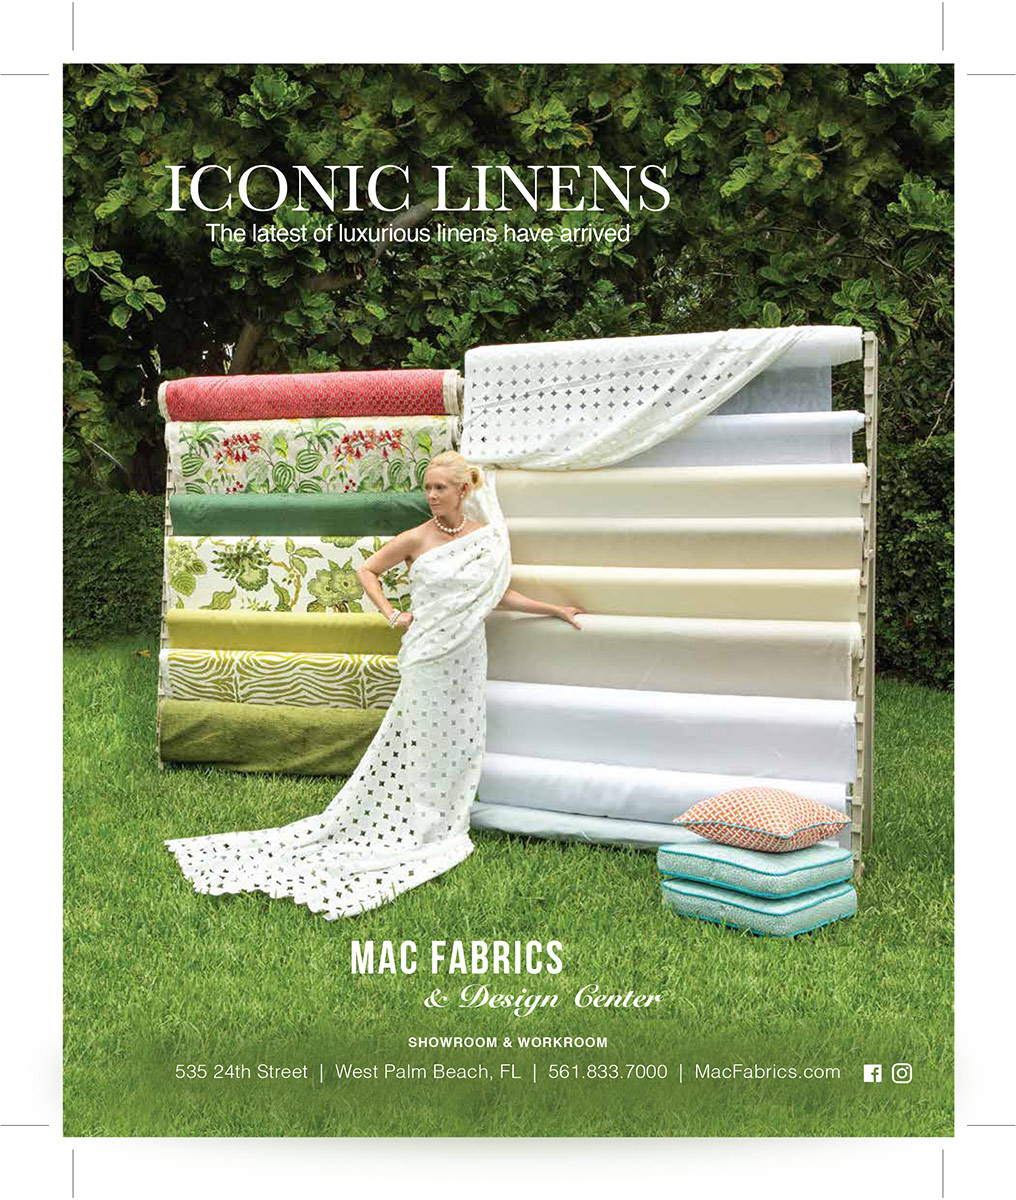 PBI full page iconic linens sm